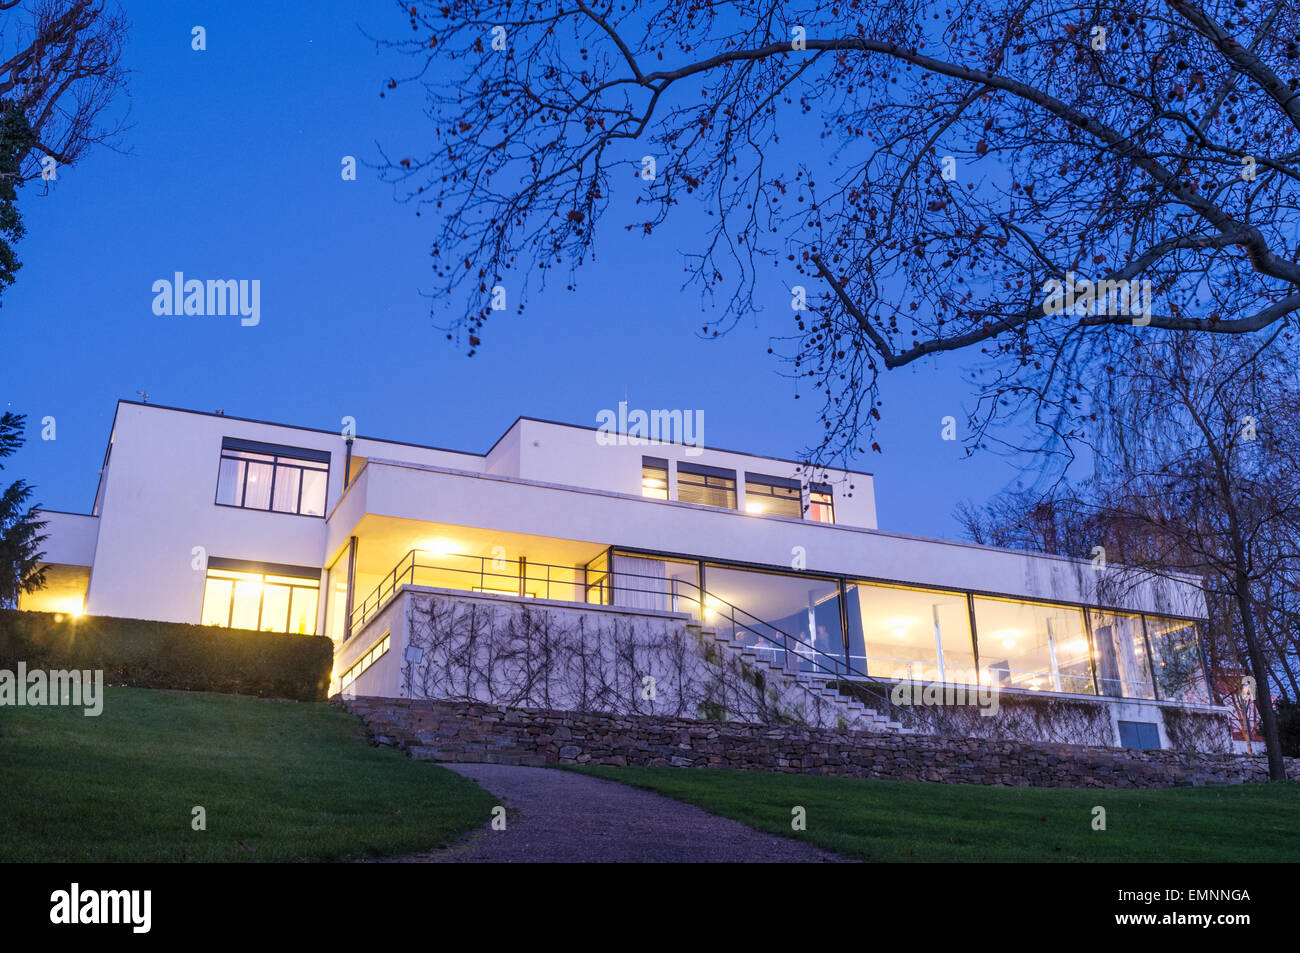 villa tugendhat at dusk mies van der rohe built it between 1928 and stock photo 81612506 alamy. Black Bedroom Furniture Sets. Home Design Ideas